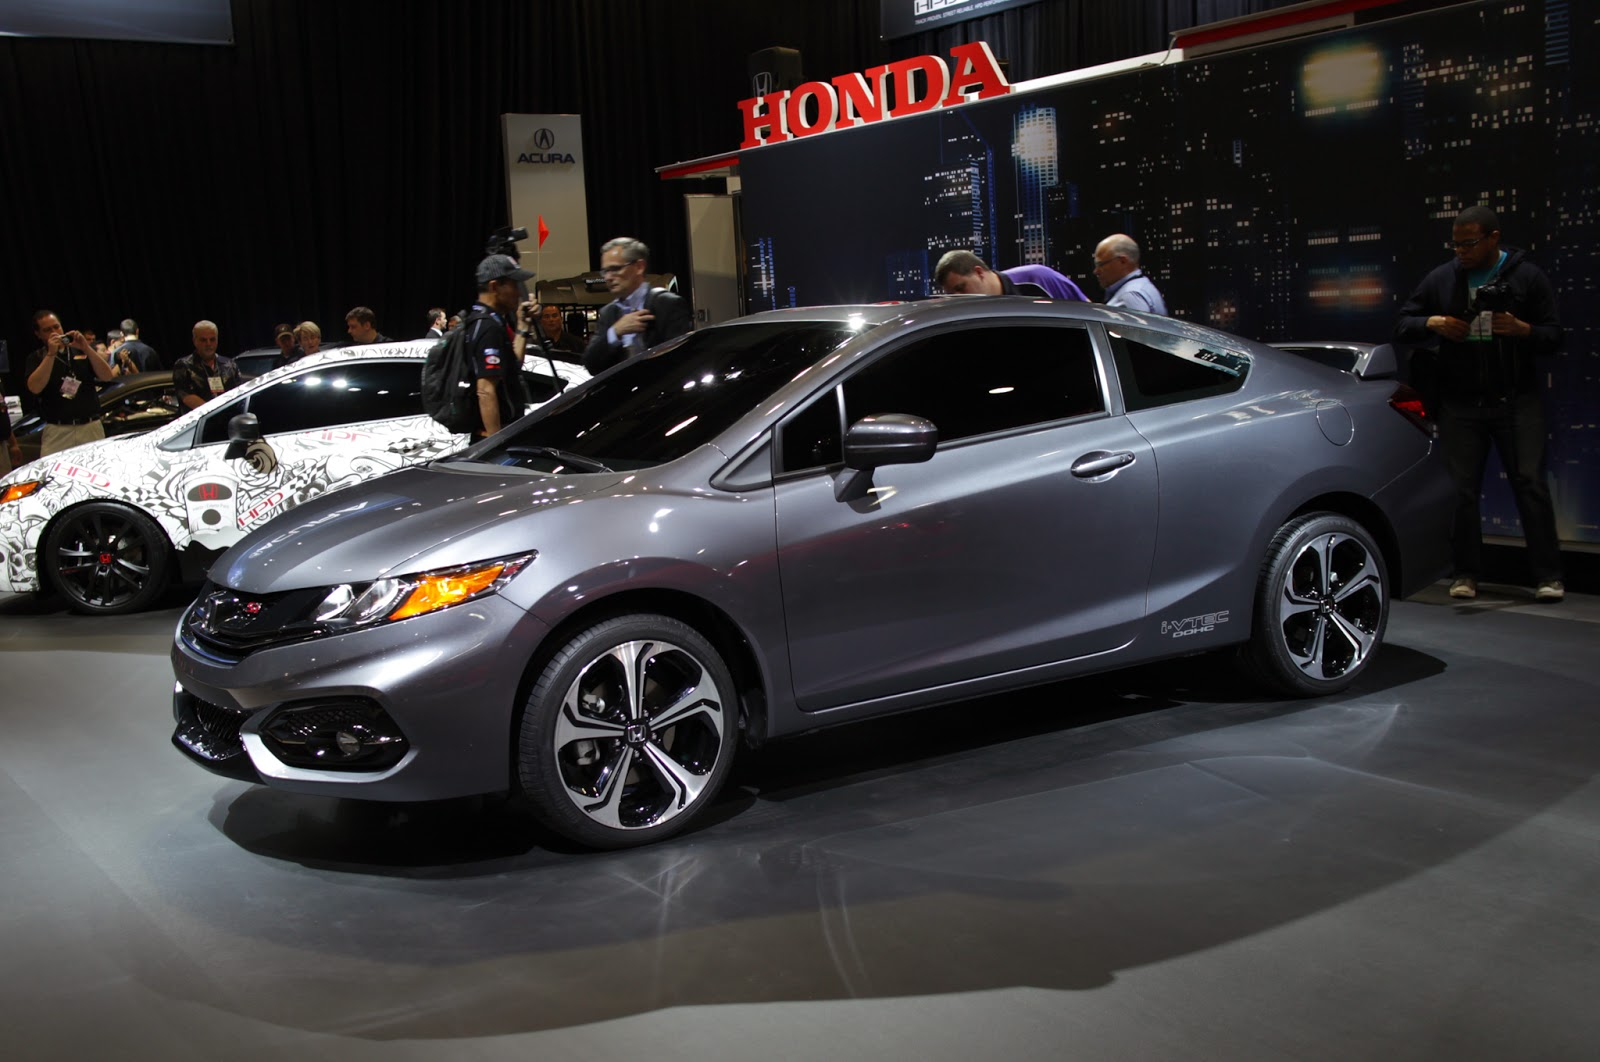 Honda reveals all new 2014 civic si coupe at the montreal international auto show